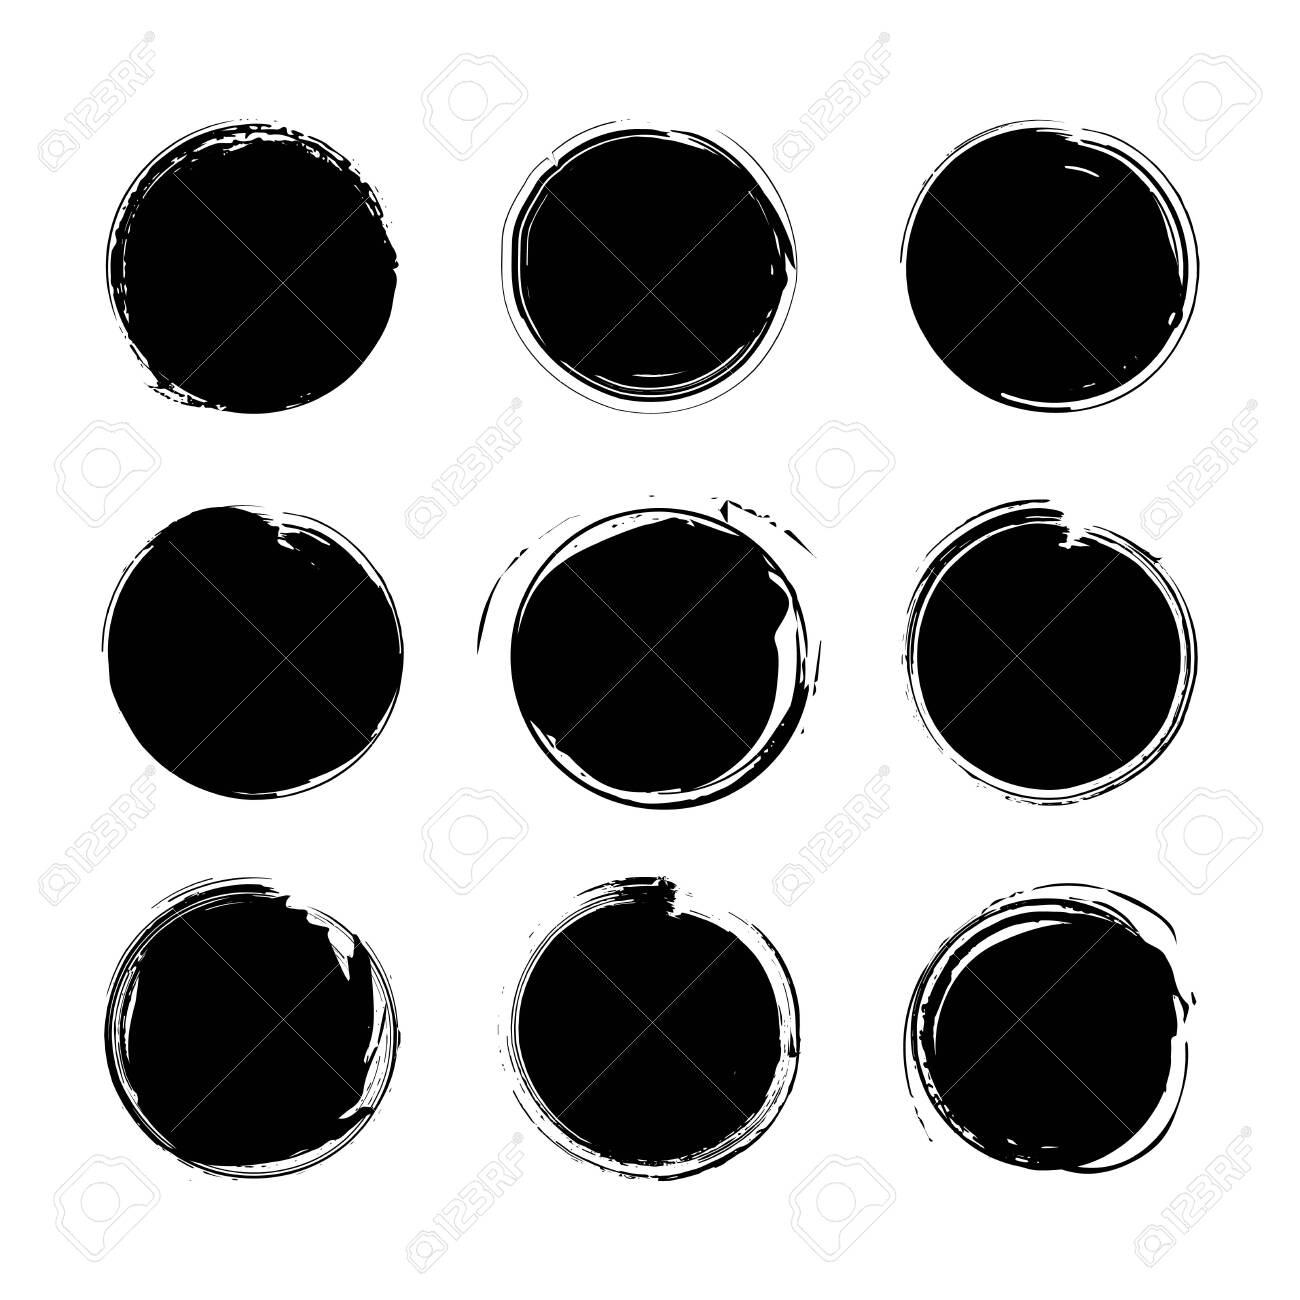 Collection of miscellaneous black grunge round brush strokes isolated over white background. Set of design elements. Vector illustration. - 135835589